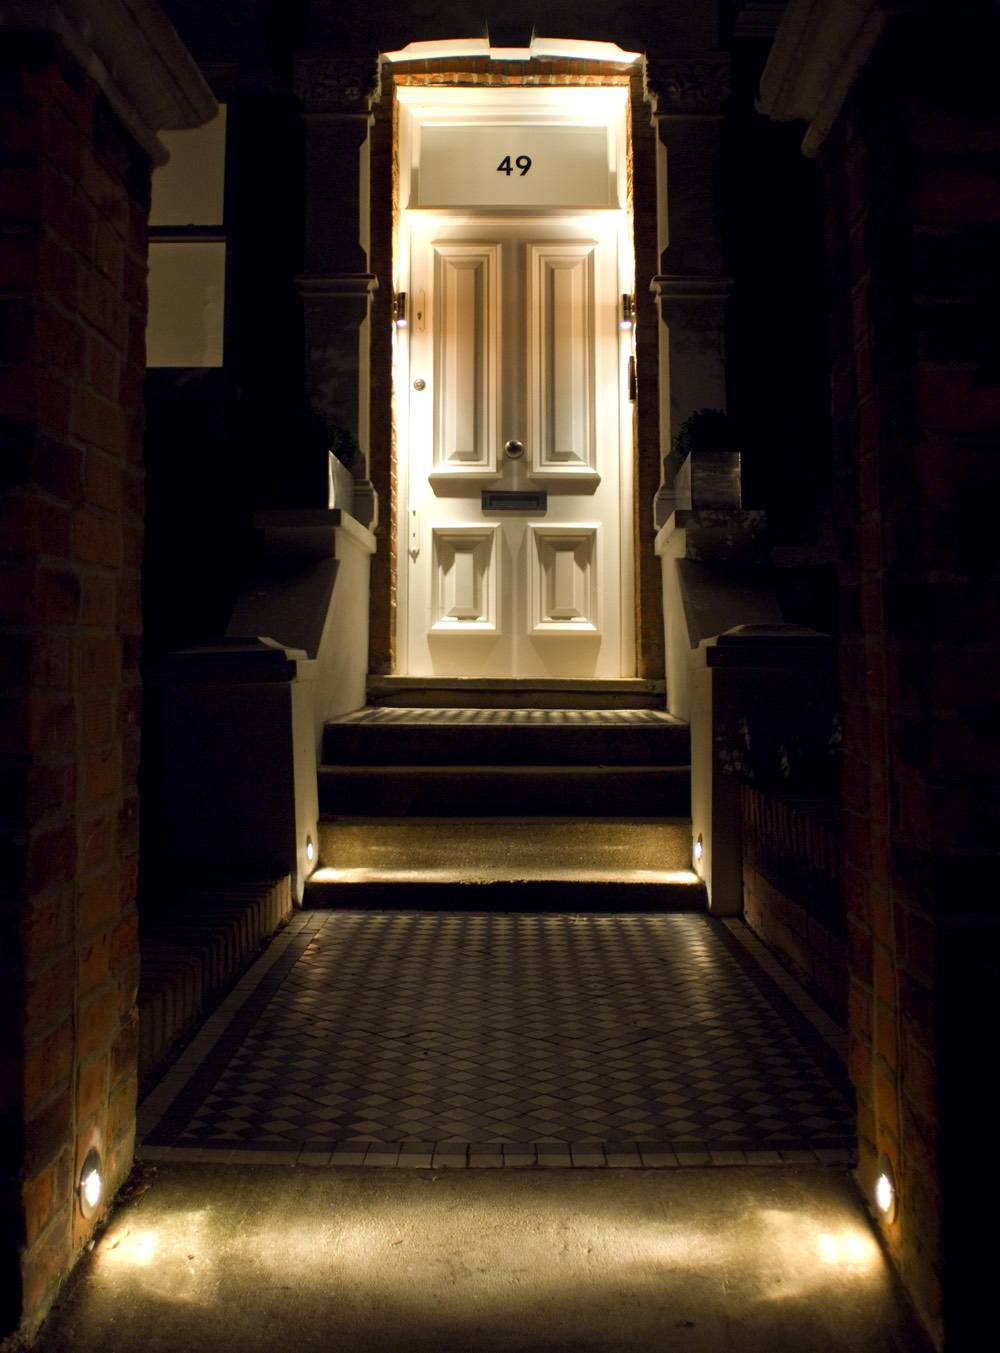 Sian Baxter Lighting Design - exterior example - www.sianbaxterlighting.com